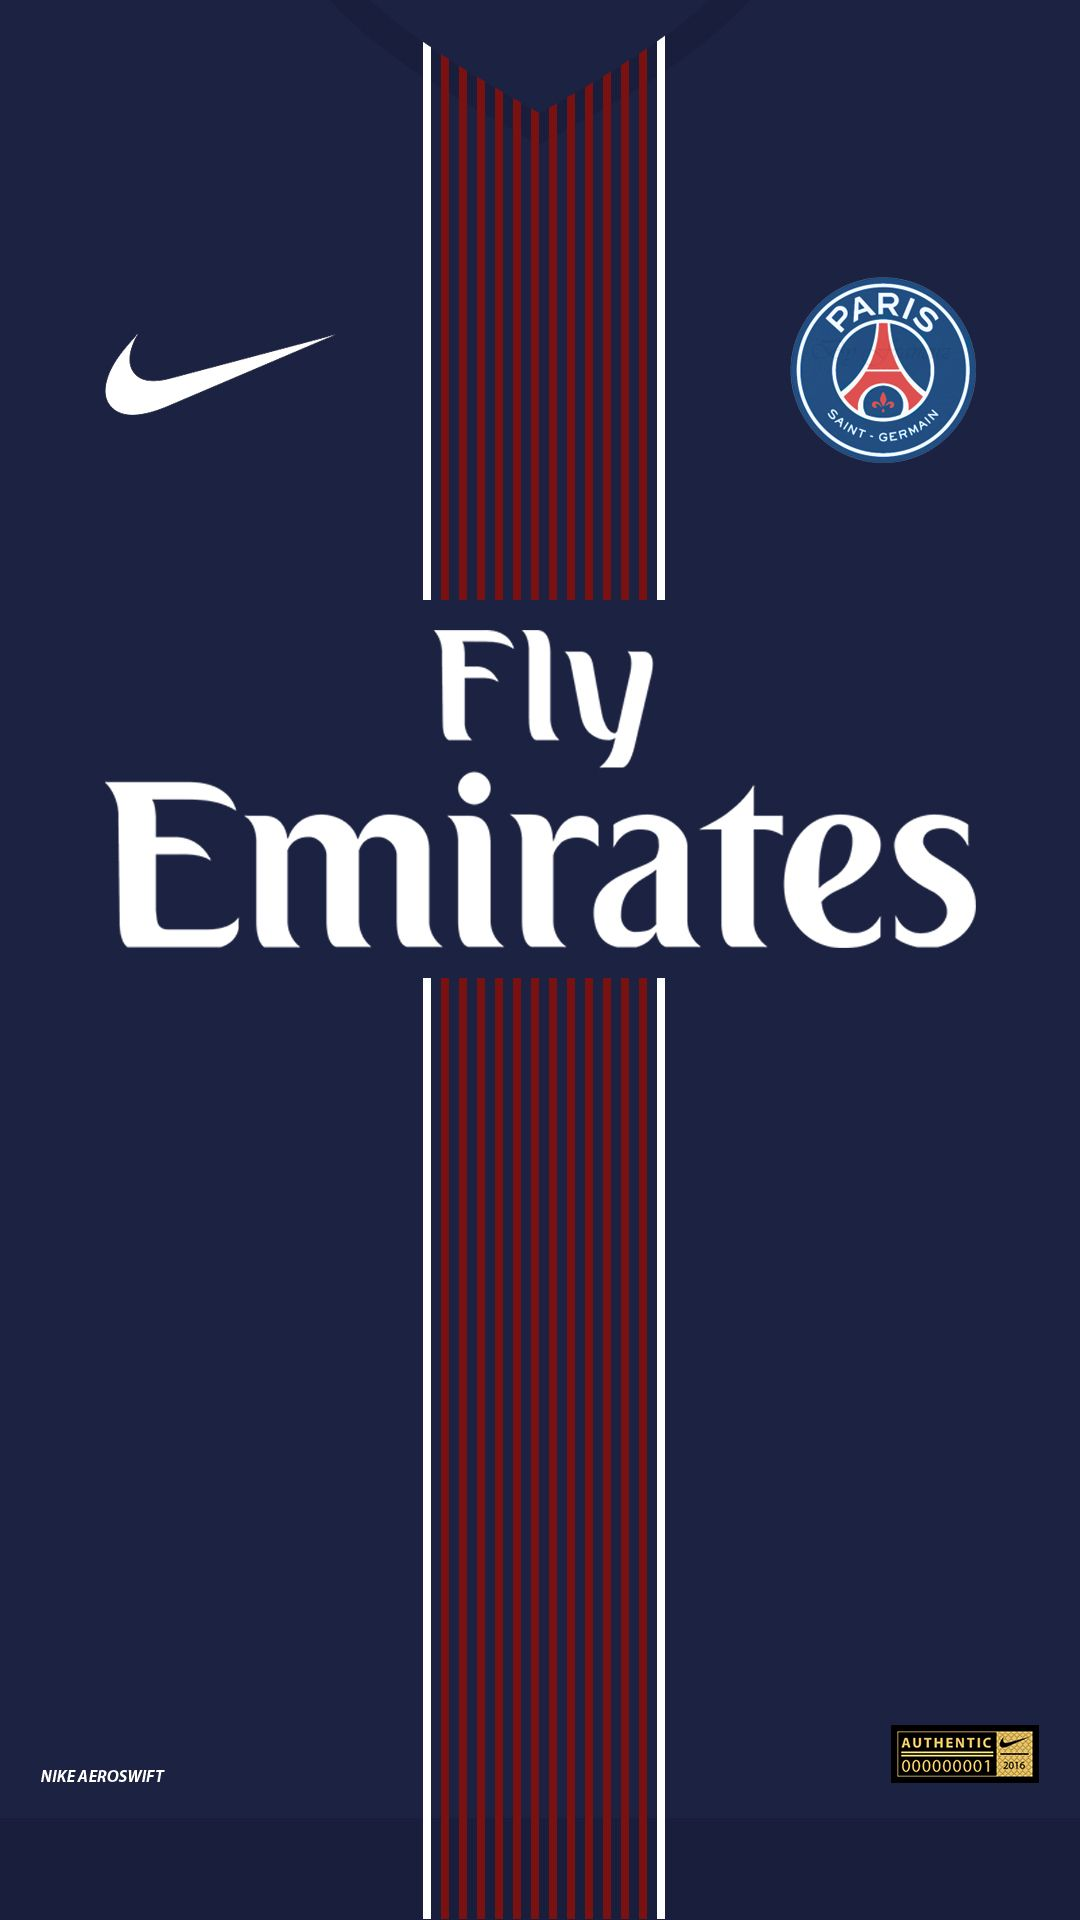 Brand new psg home jersey 2016 17 coming out on may 23th 2016 brand new psg home jersey 2016 17 coming out on may 23th 2016 voltagebd Gallery